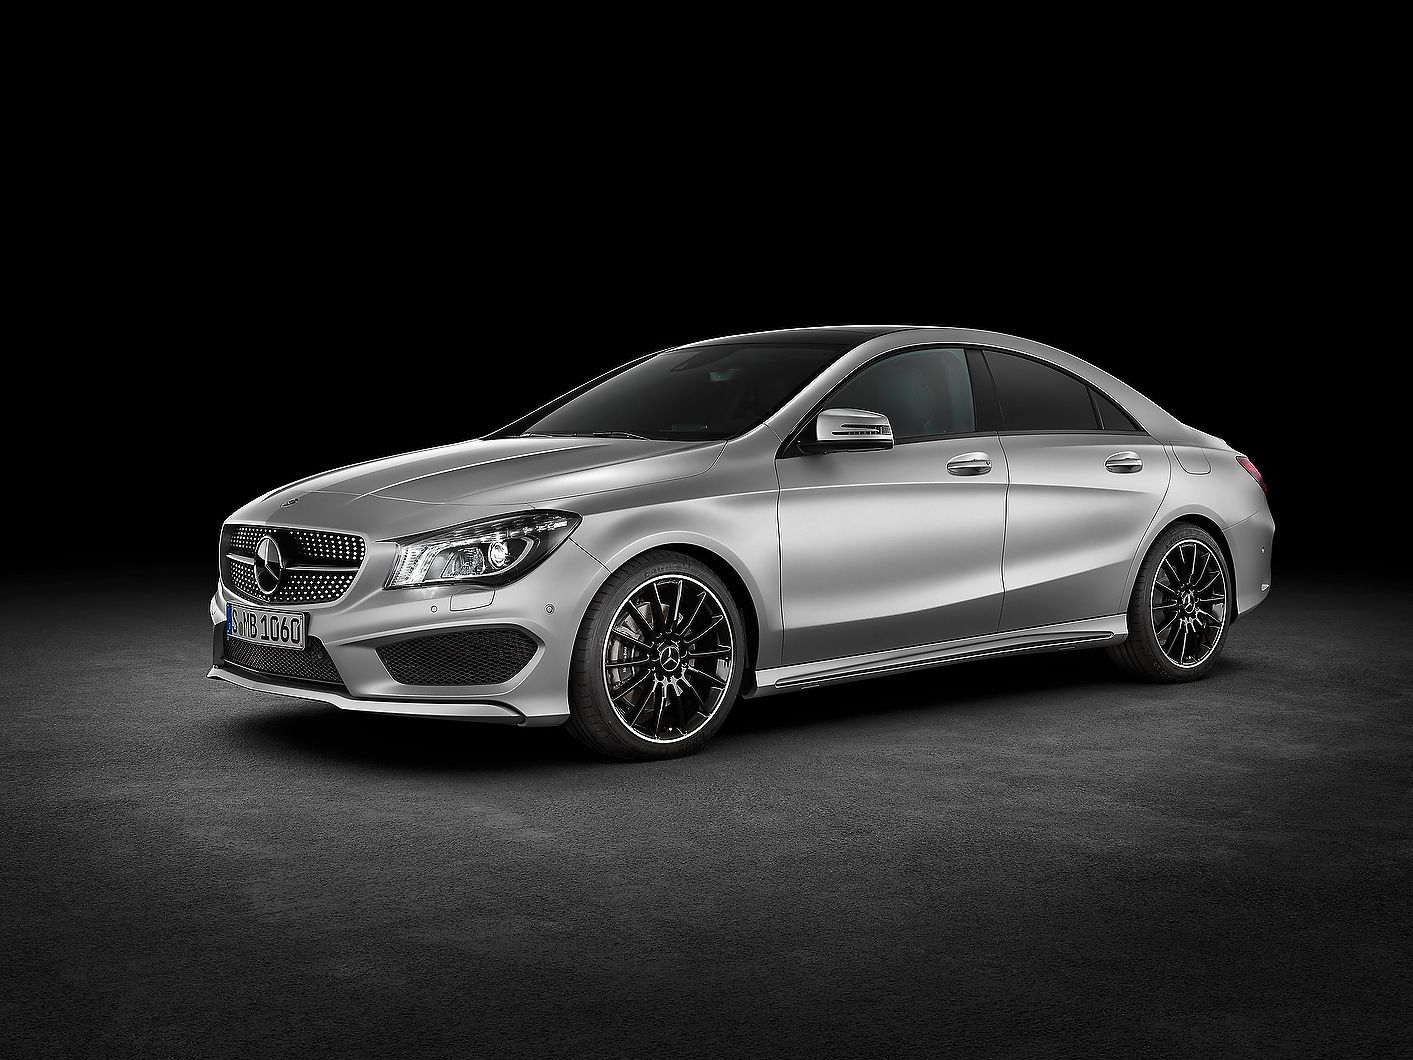 Mercedes Cla Coupe Whips Mercedes Benz Cla 250 Mercedes Sales